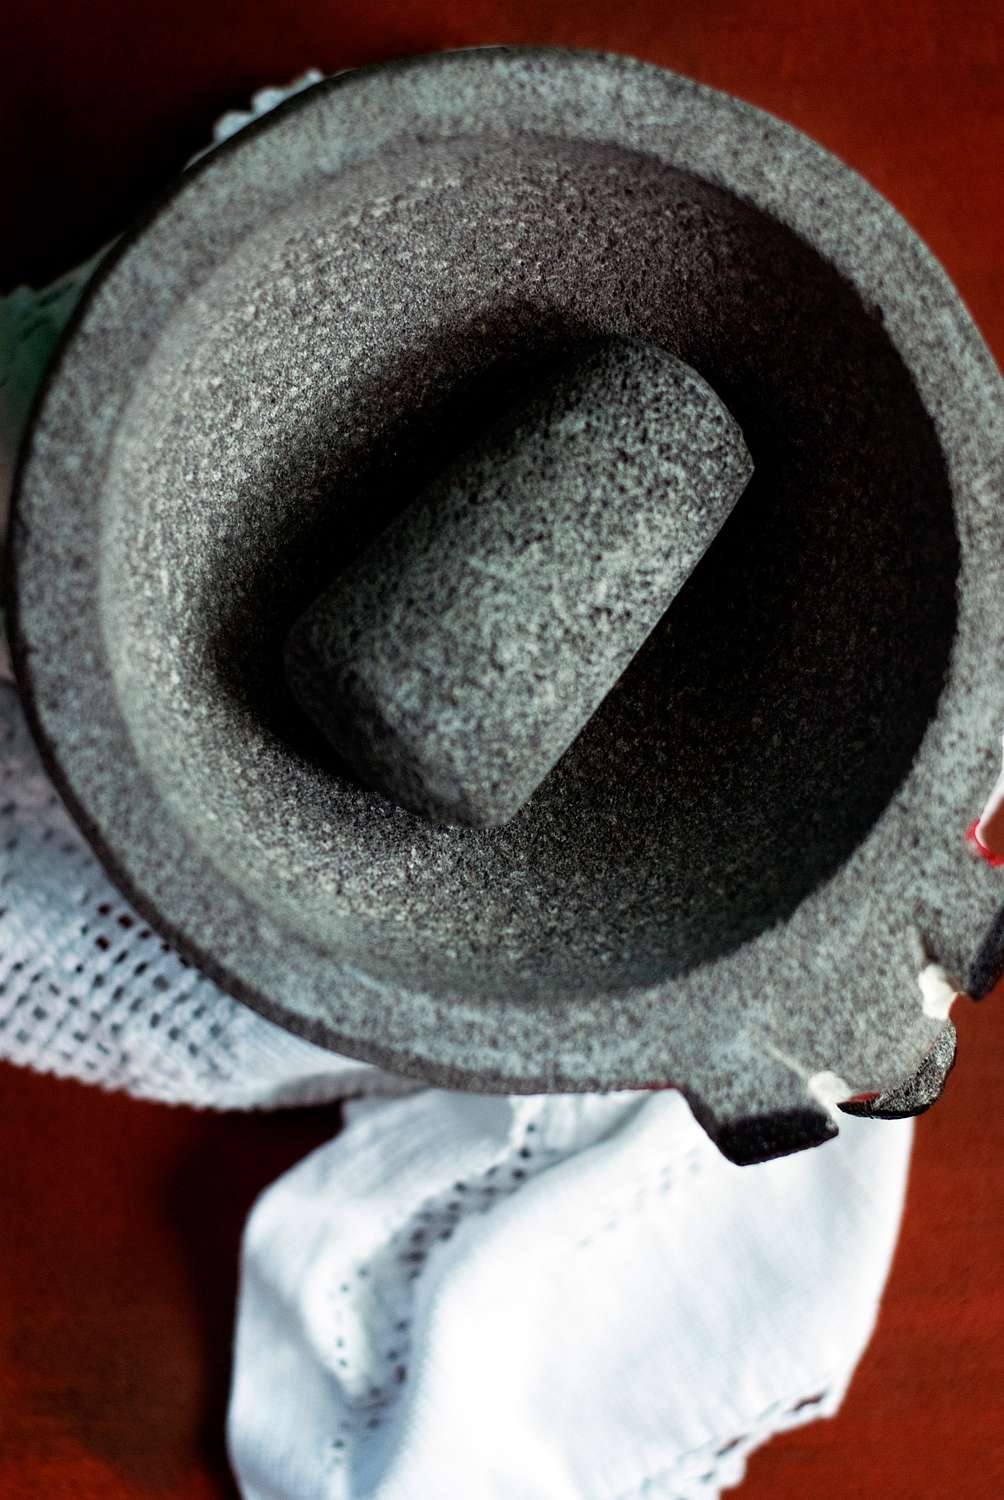 seasoning a brand new mortar and pestle introduction